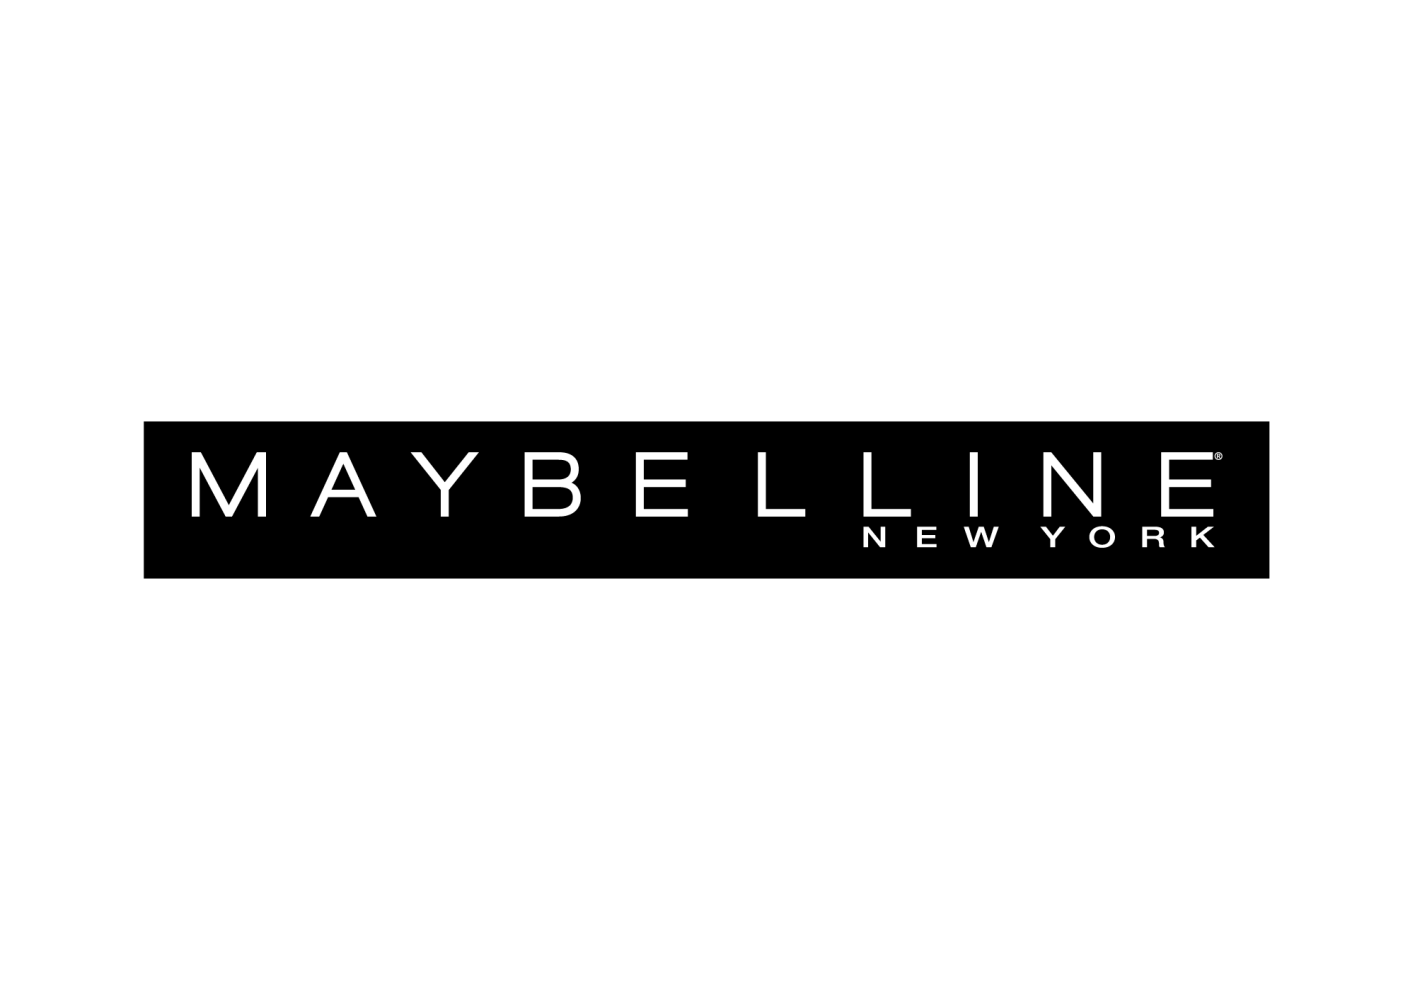 Boots Maybelline Make-up Tutorial Featuring Madalina